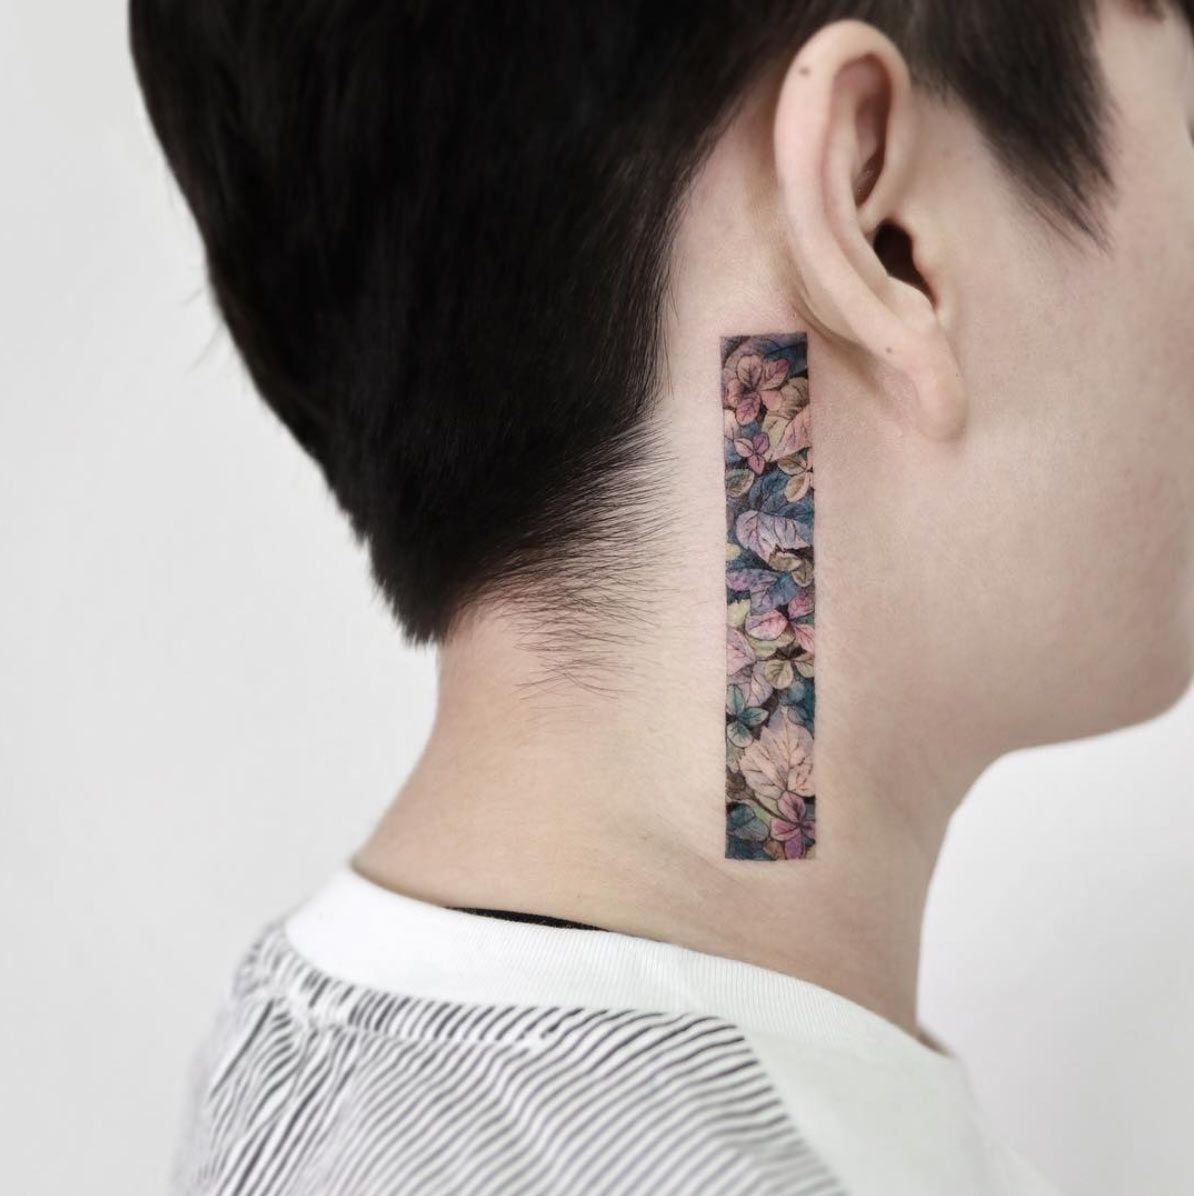 Floral Neck Tattoo By Sigak Neck Tattoo For Guys Neck Tattoo Tattoos For Guys